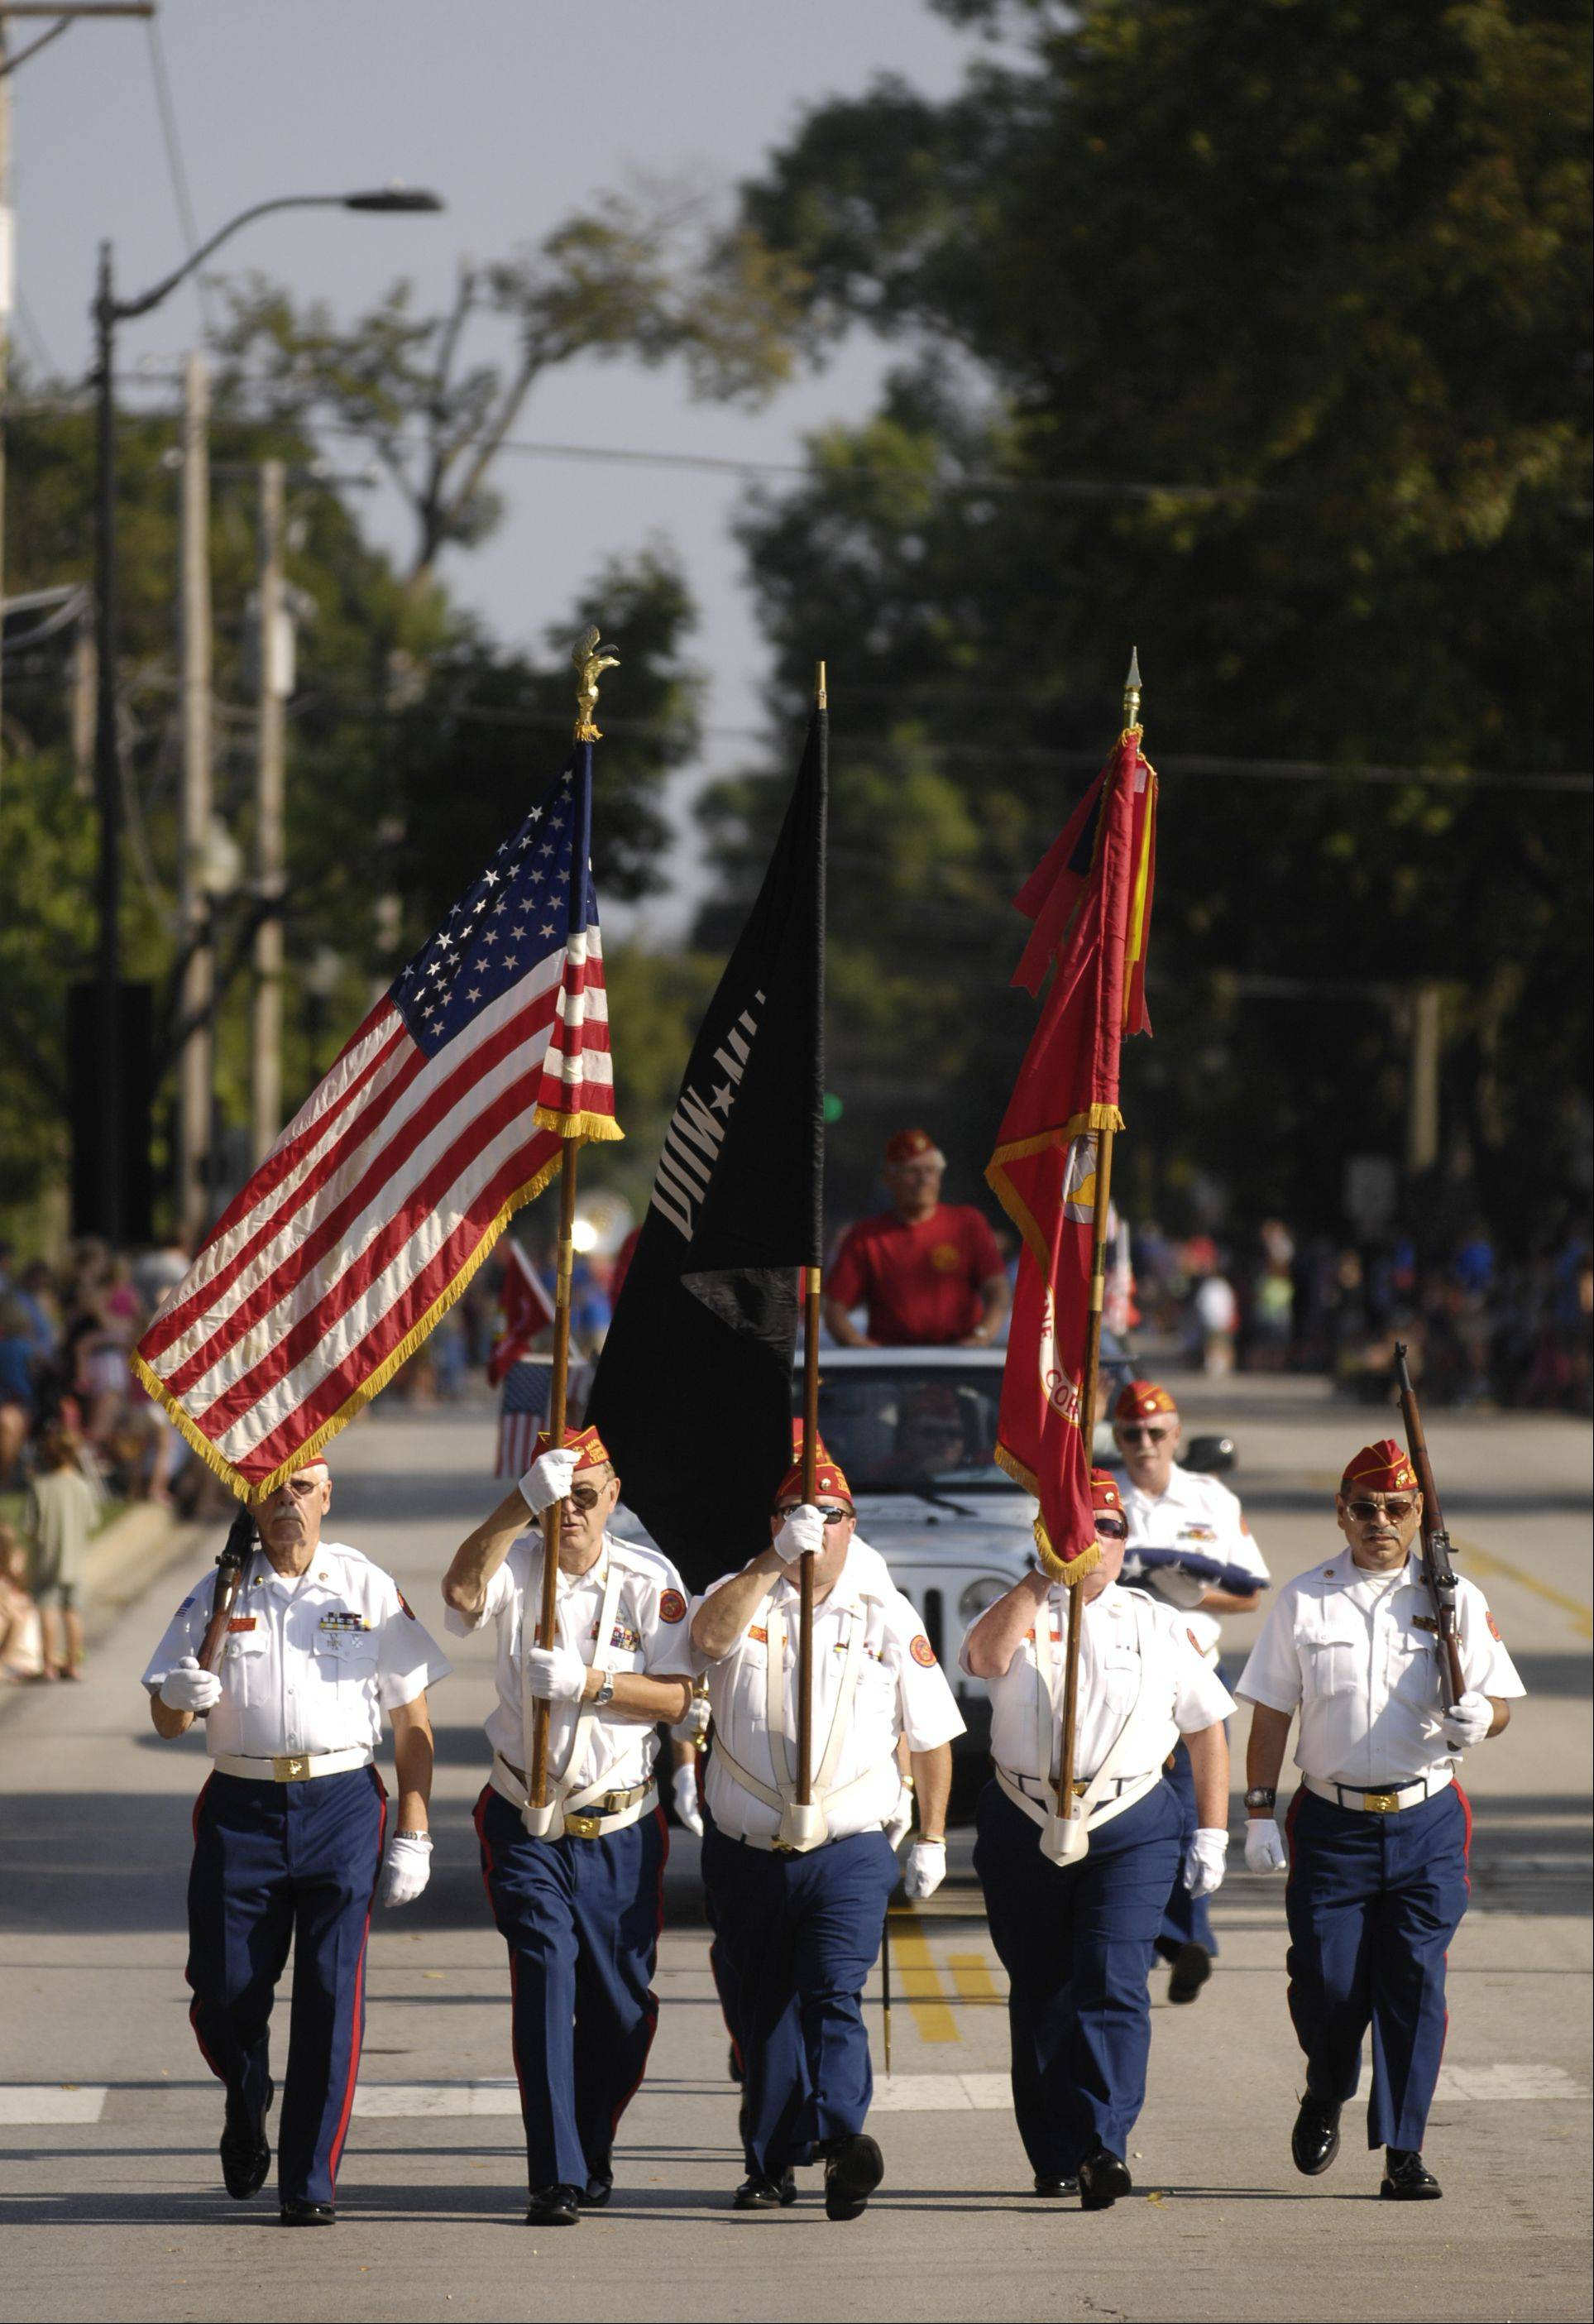 The DuPage County Marines, World War II Veterans march in the rescheduled Wheaton Fourth of July parade on Labor Day. The parade was rescheduled because of storm damage from July 1.